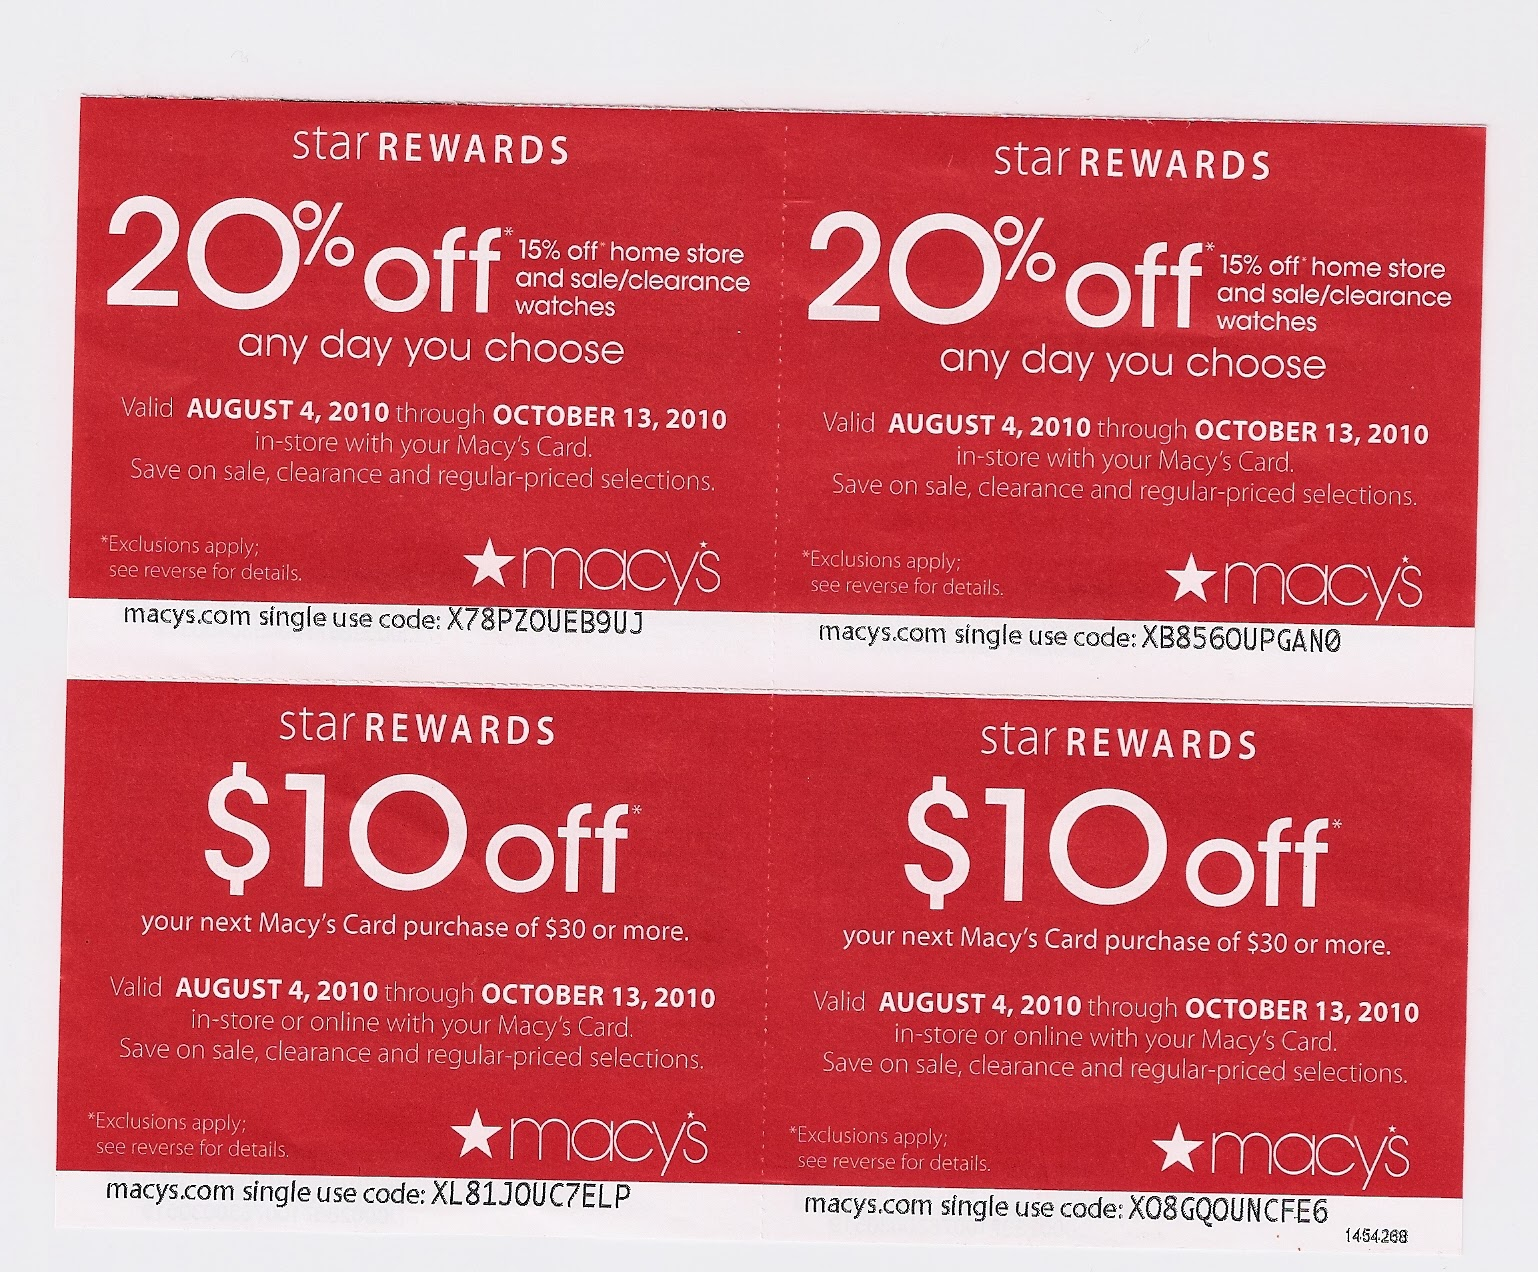 Macy's coupons for $10 off $25 or 30% off coupons for Christmas Holiday Season. Also get the best deals on home, clothing and shoes.